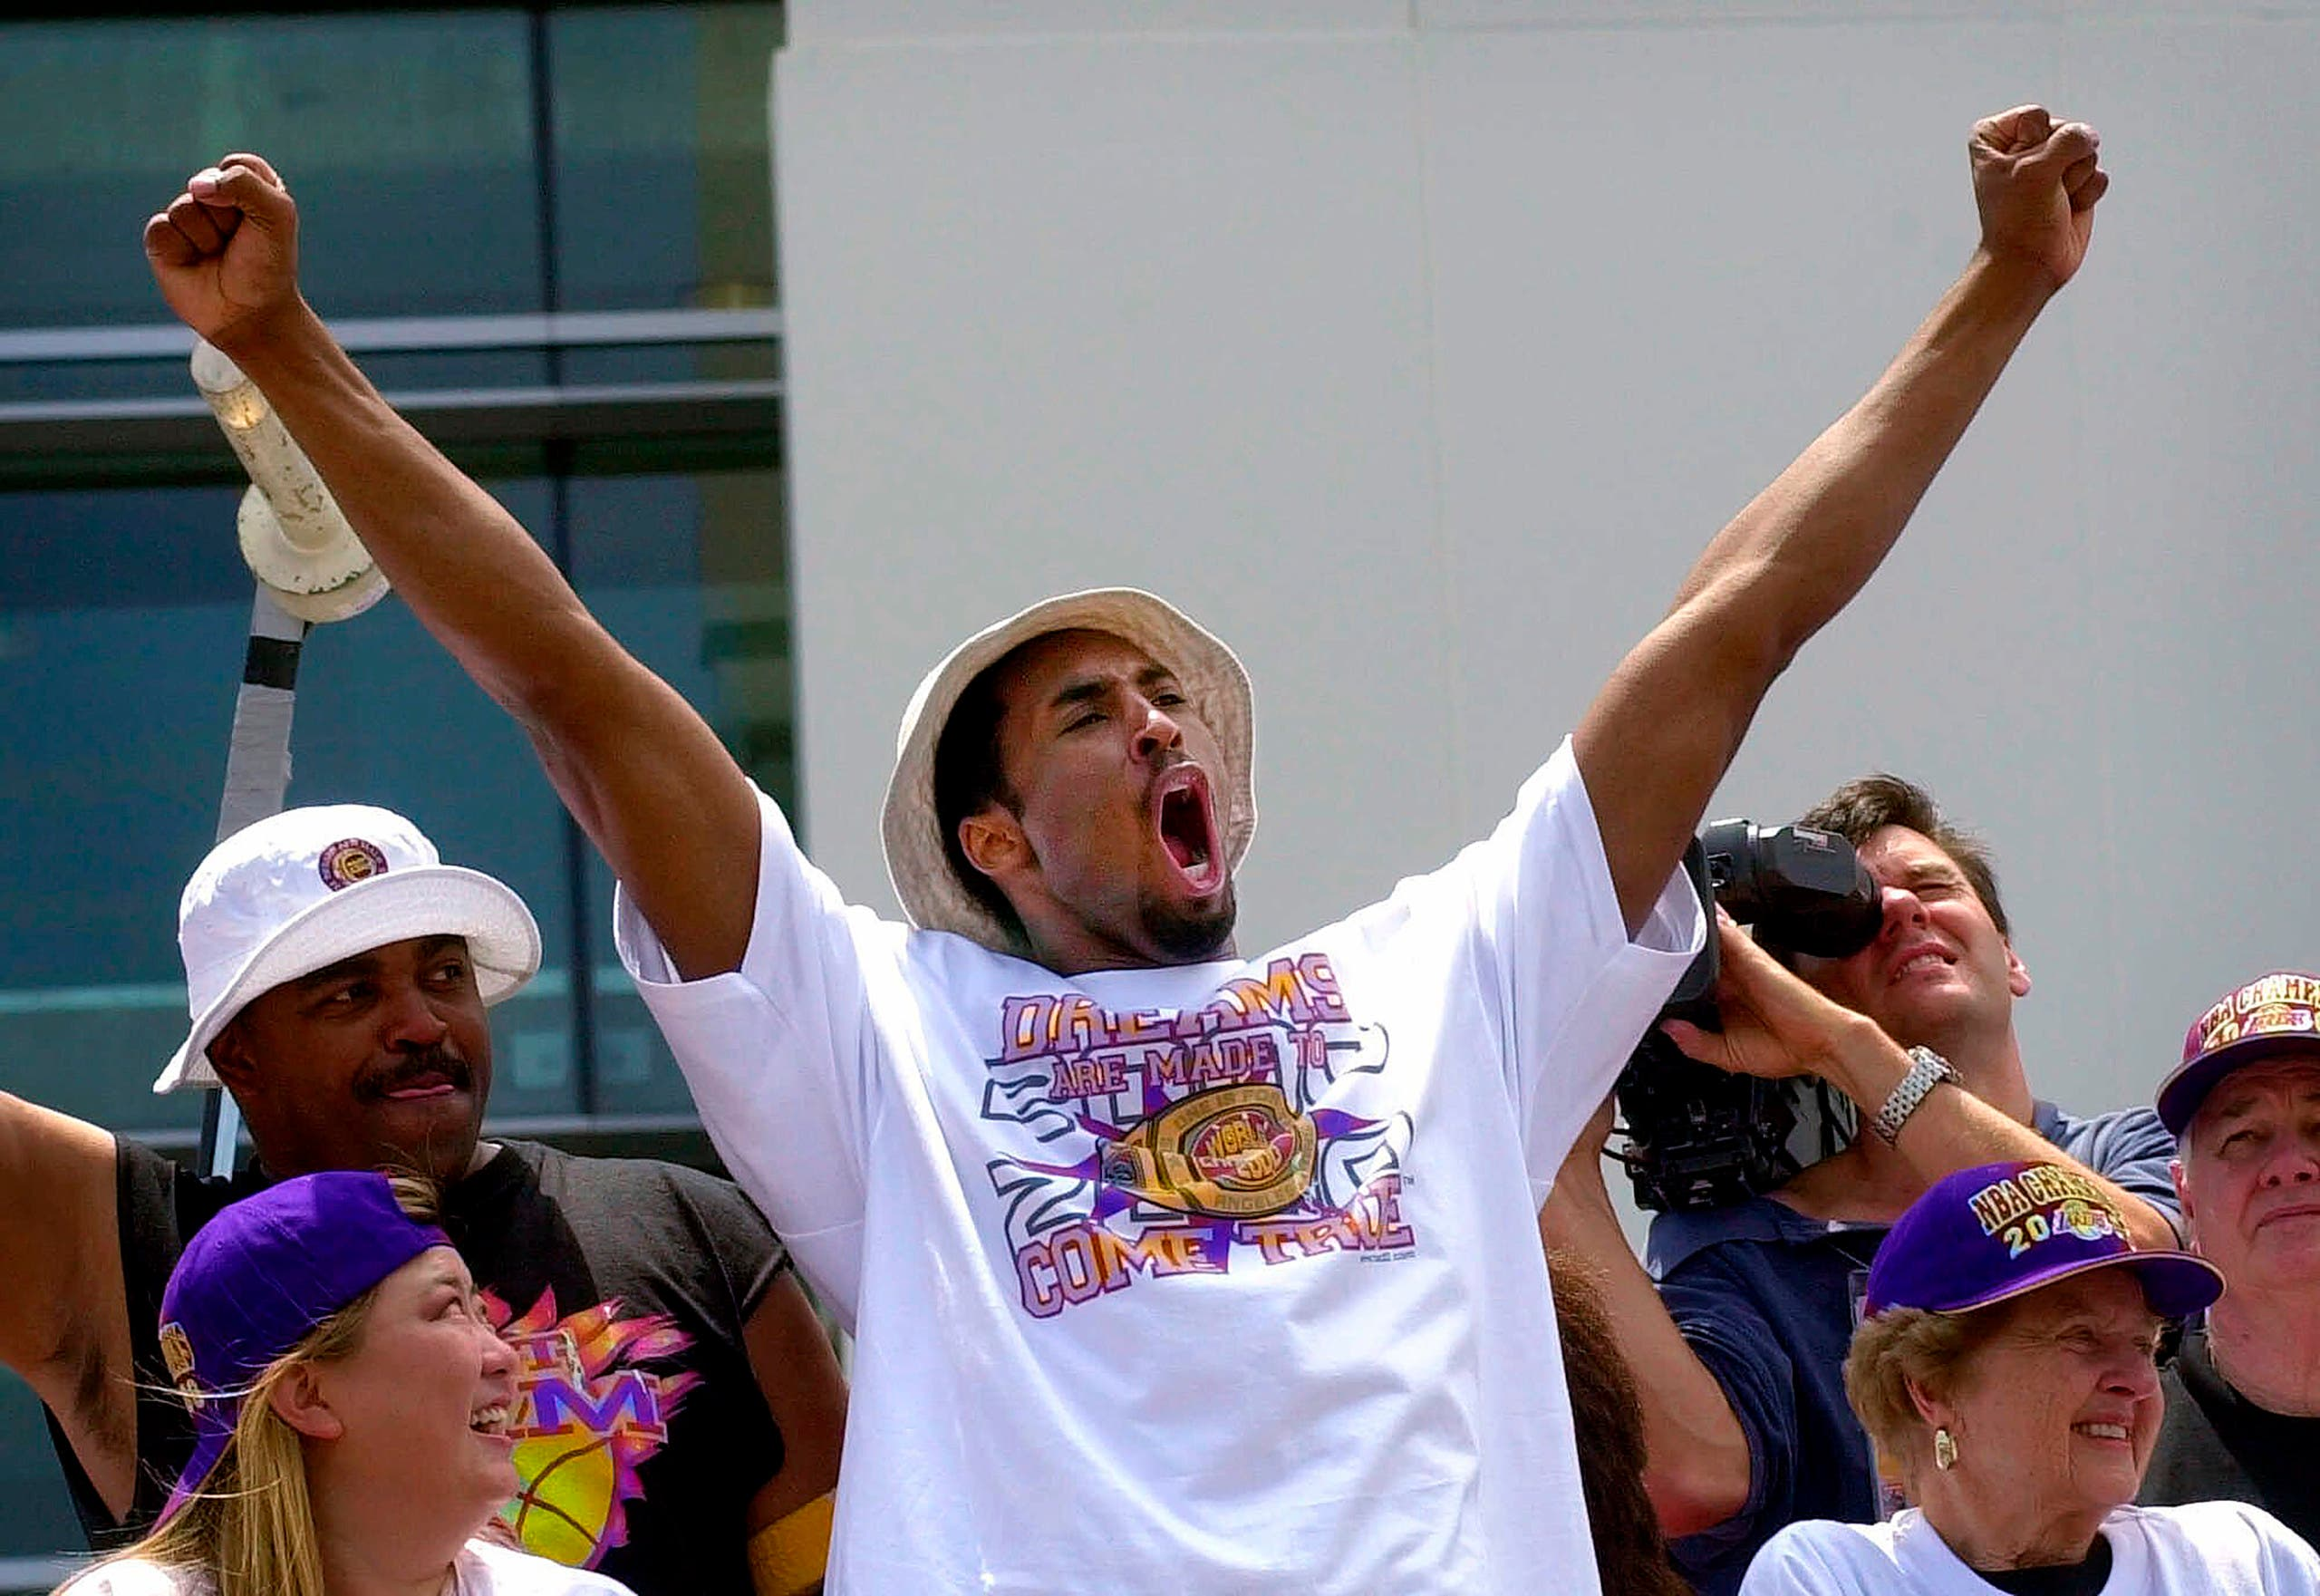 Kobe Bryant gestures to the crowd from atop a doubledecker bus as the Lakers victory parade arrives at Staples Center in Los Angeles, June 21, 2000. (AP)